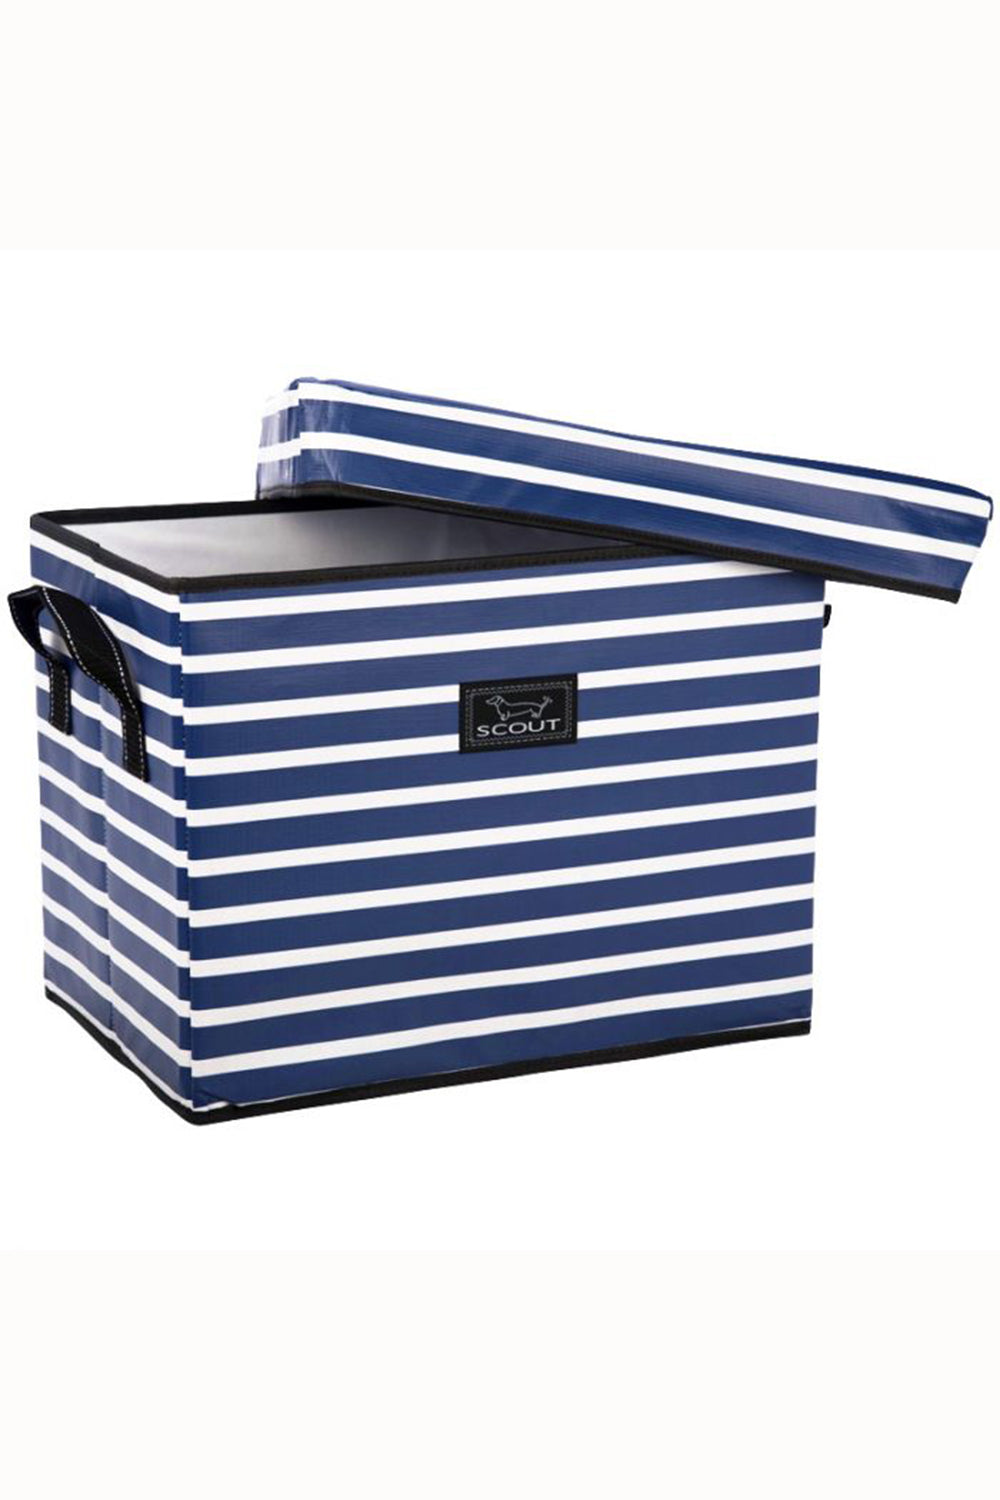 "Medium Rump Roost Lidded Storage Bin - ""Nantucket Navy"" SP21 / SUM21"